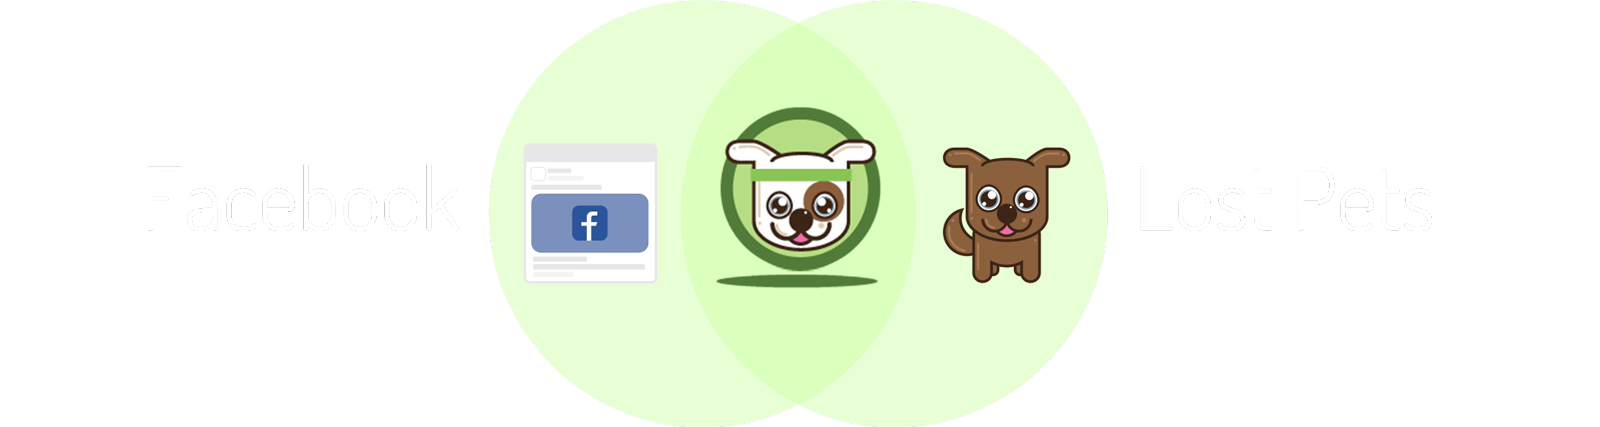 Facebook Ads + Lost Pets